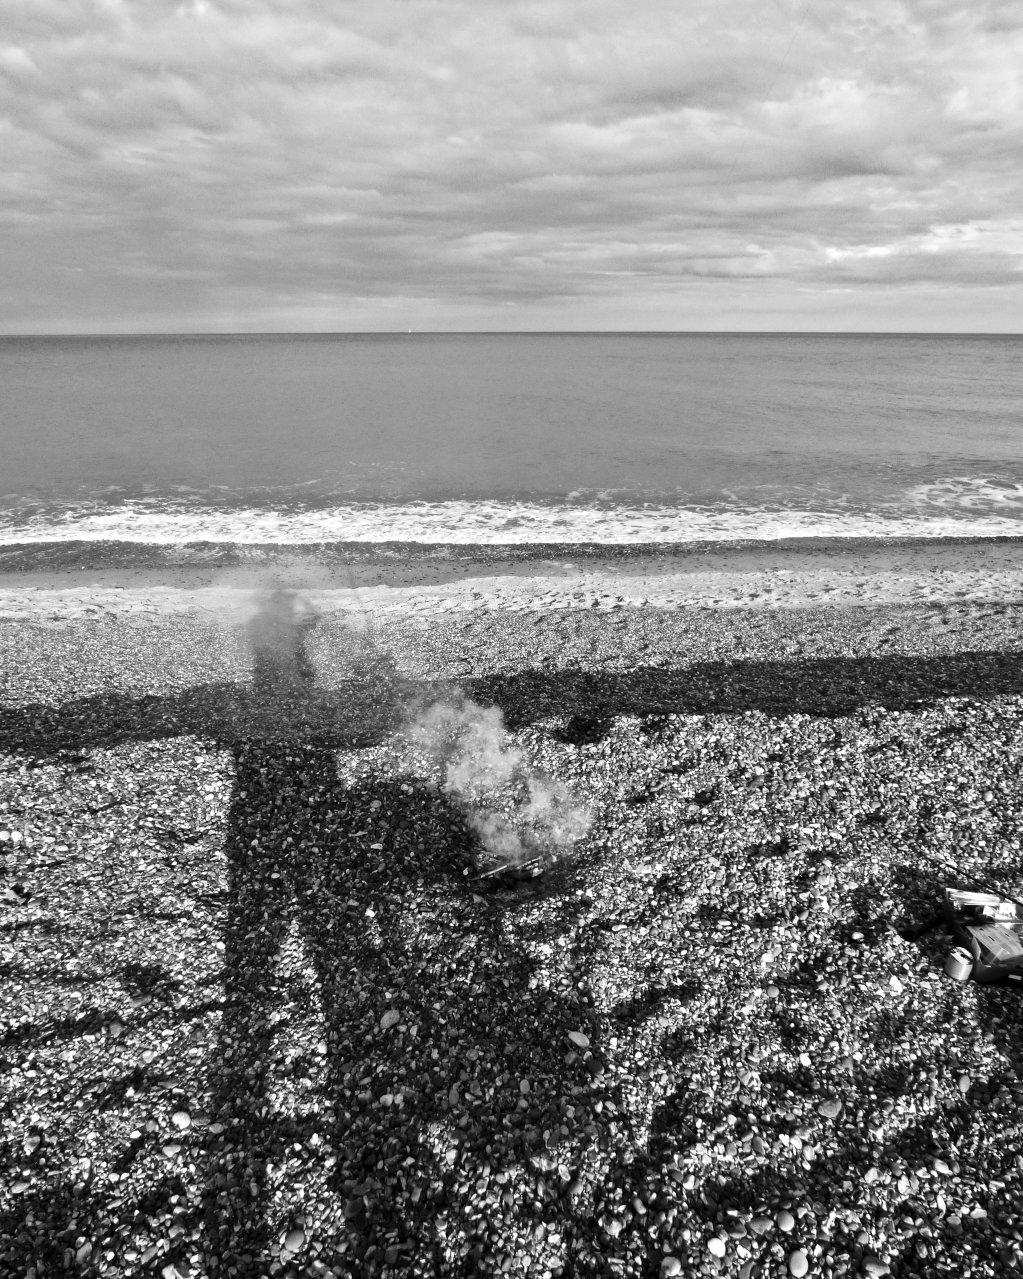 Self Portrait, Smoking Fire, Dunwich Beach, Suffolk 2017